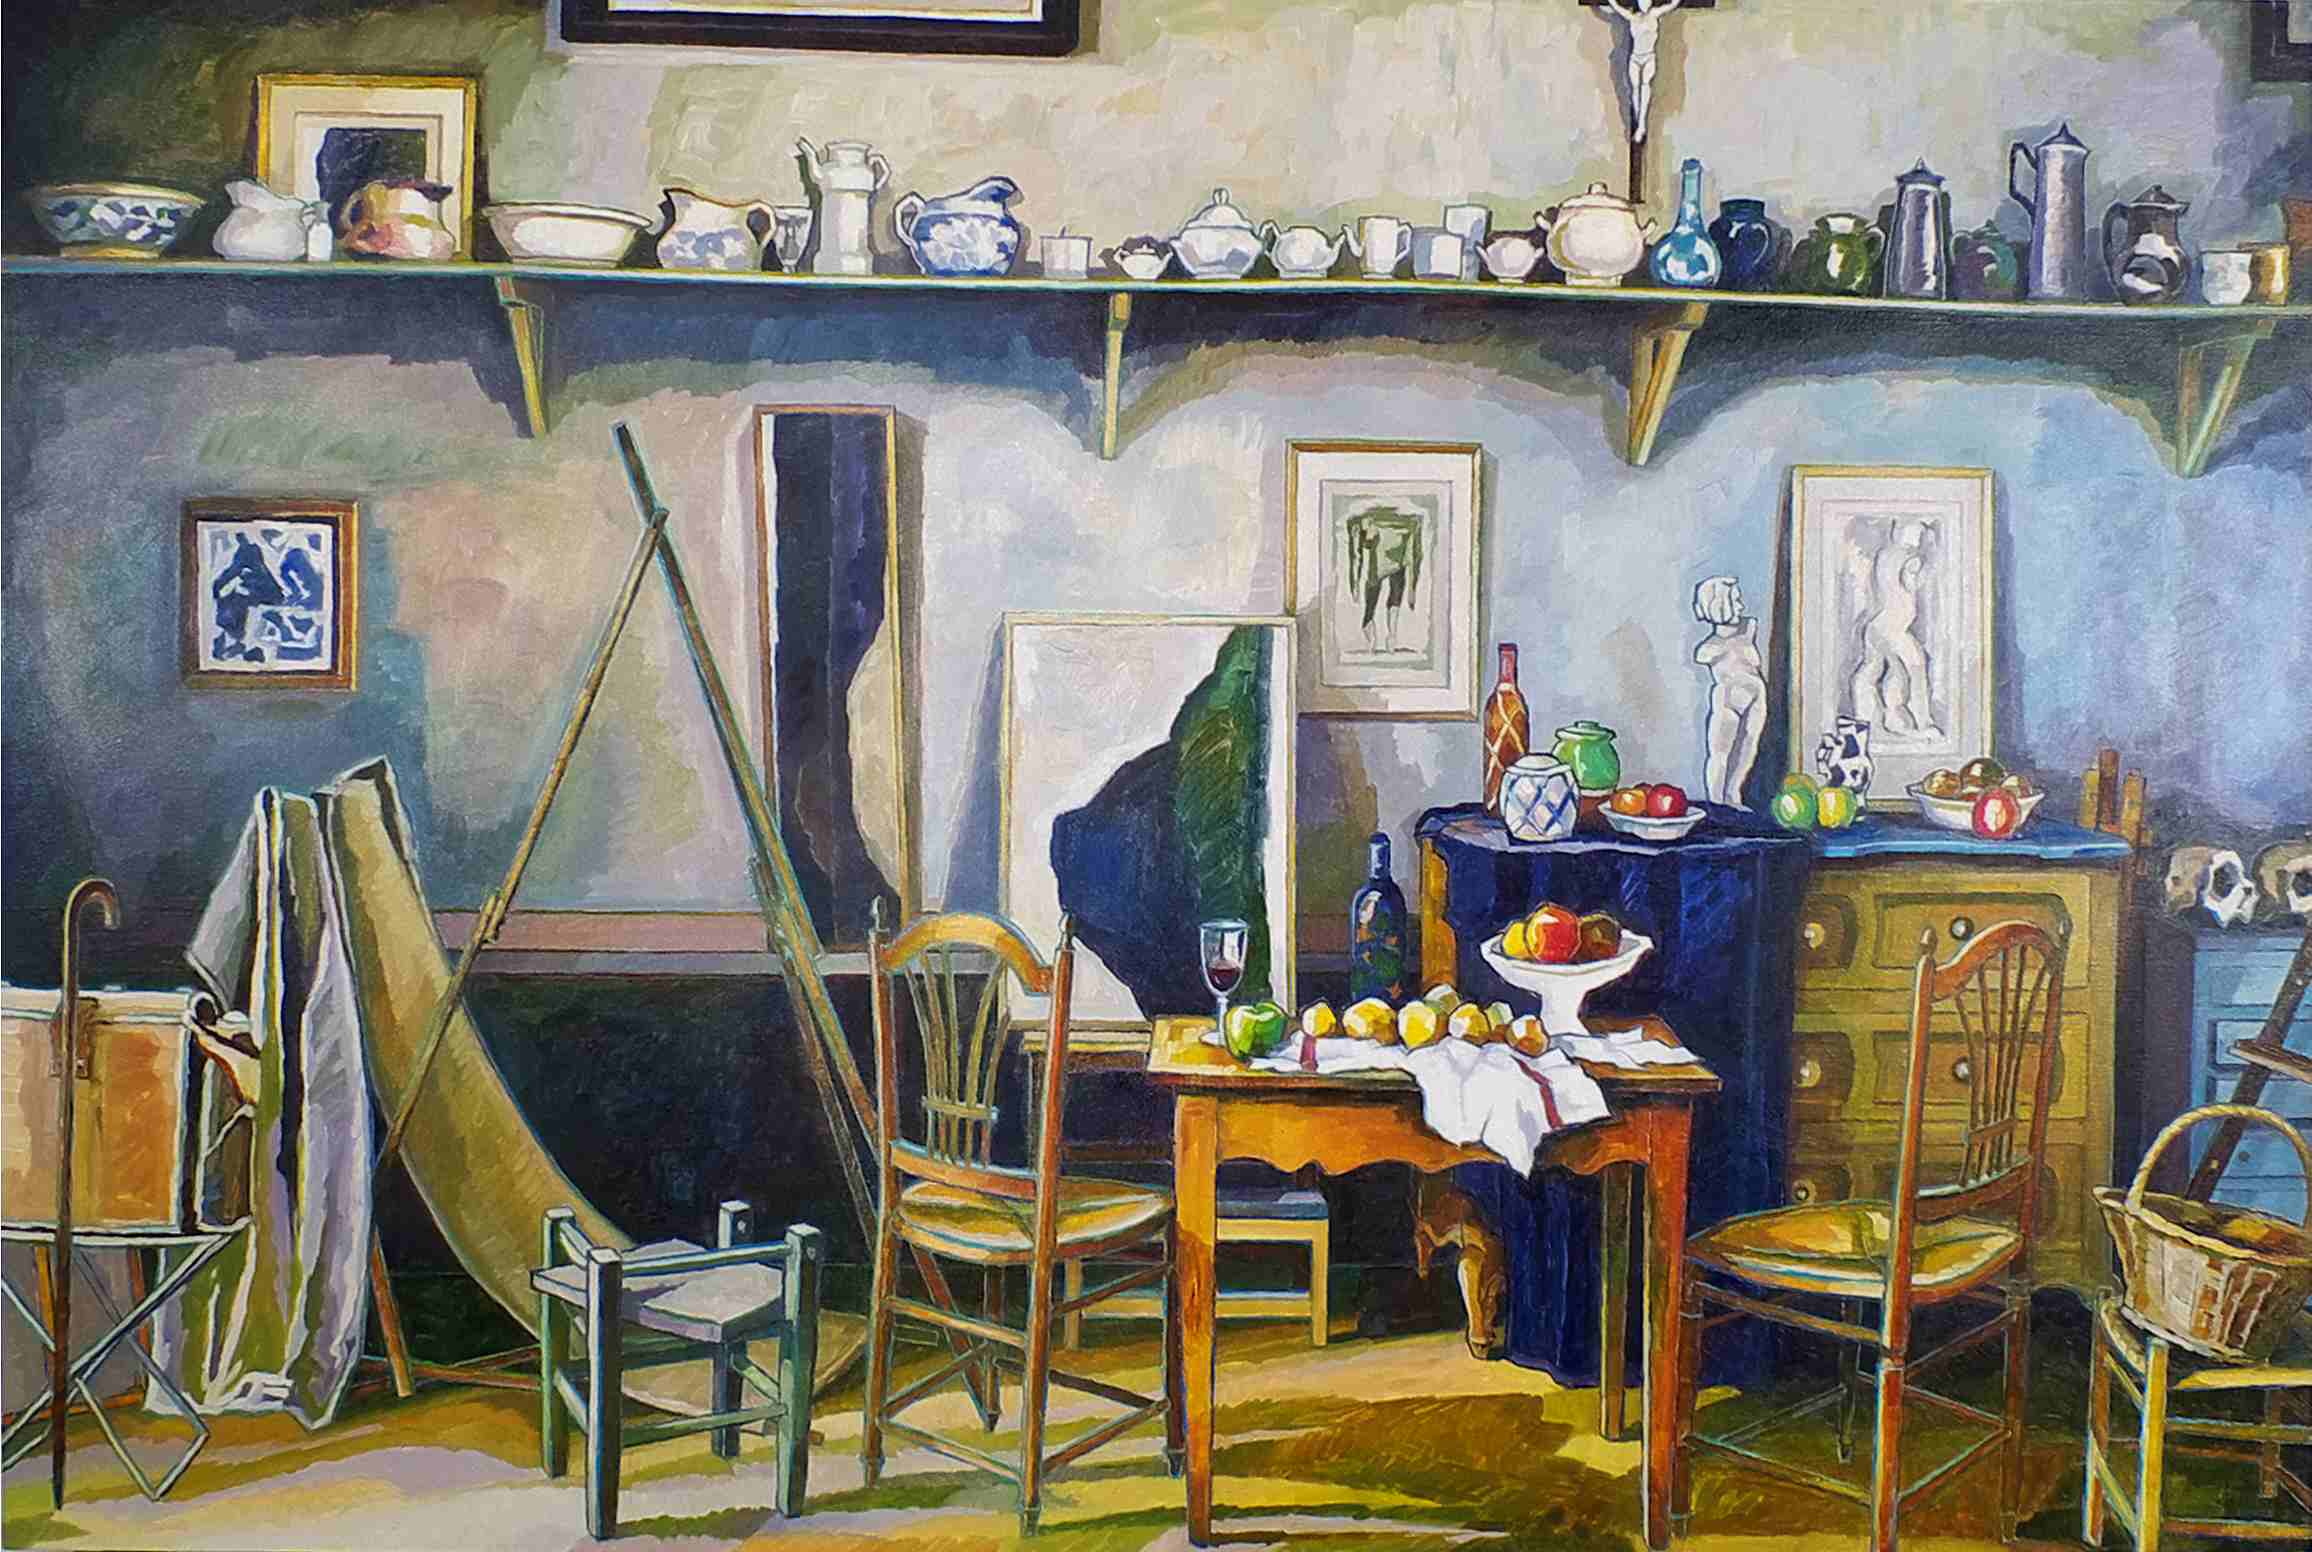 studio of paul cezanne aix en provence south of france 1890 s raymond jennings artist. Black Bedroom Furniture Sets. Home Design Ideas